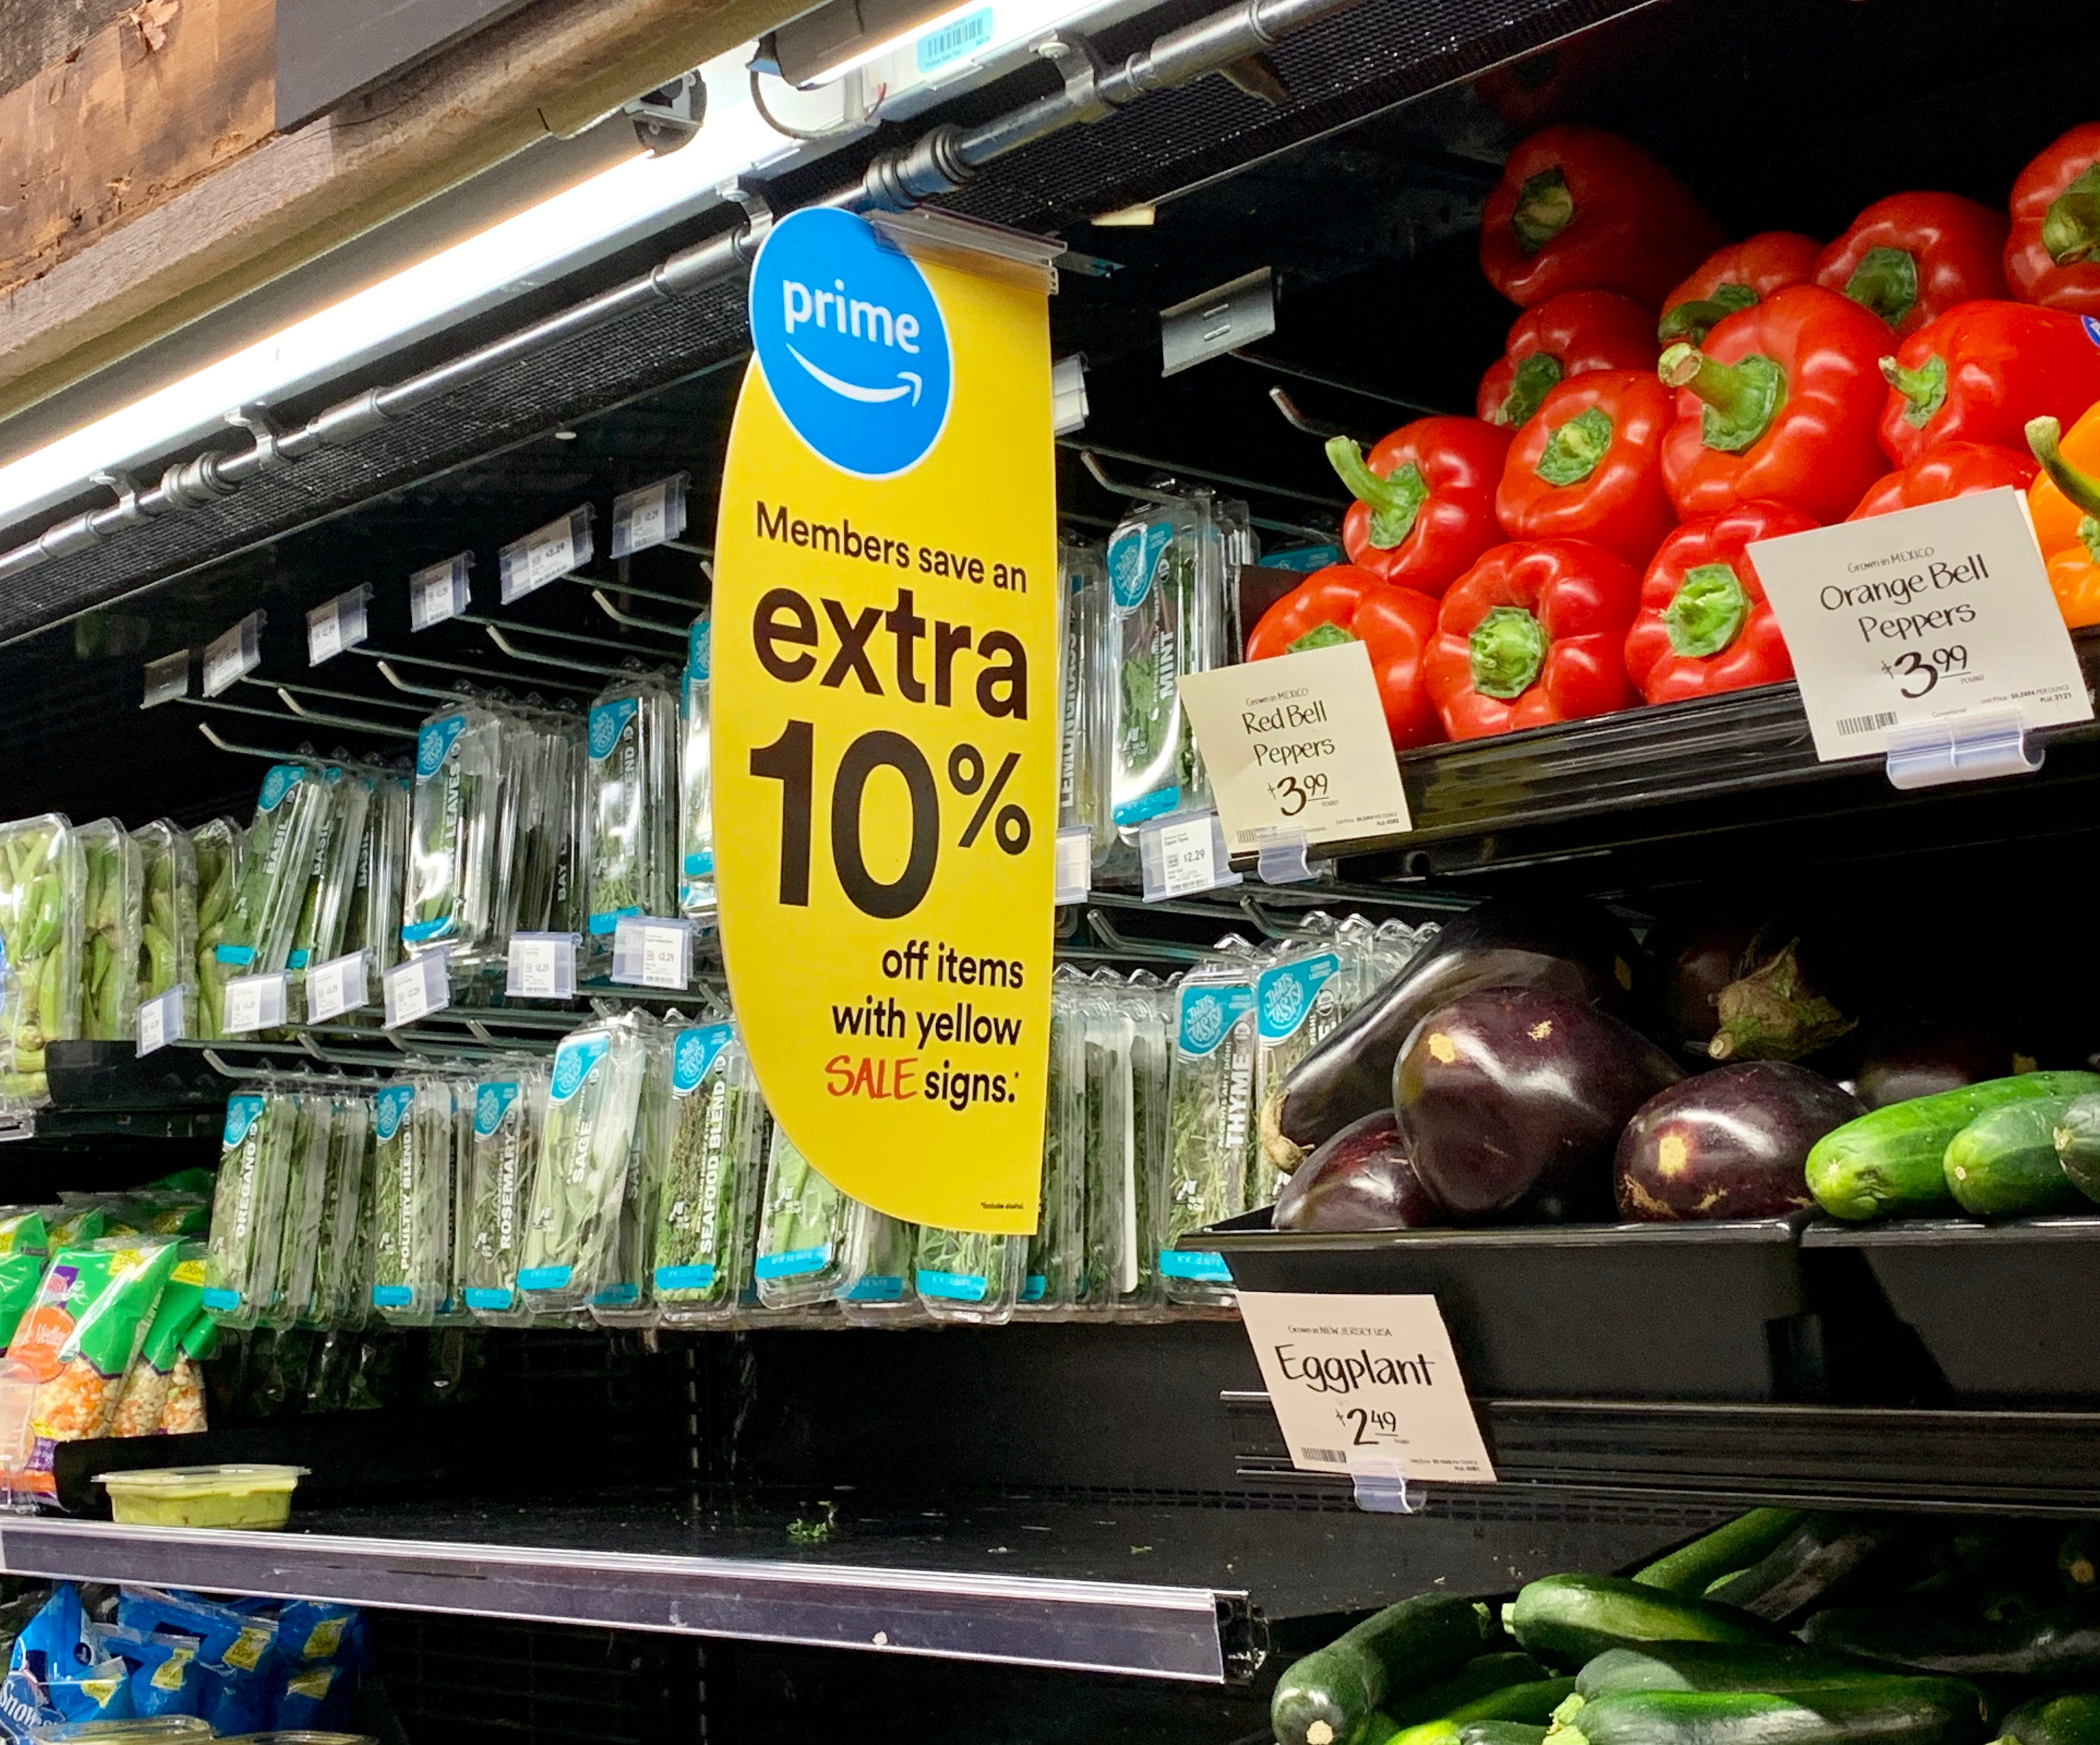 Amazon lowers food prices at Whole Foods